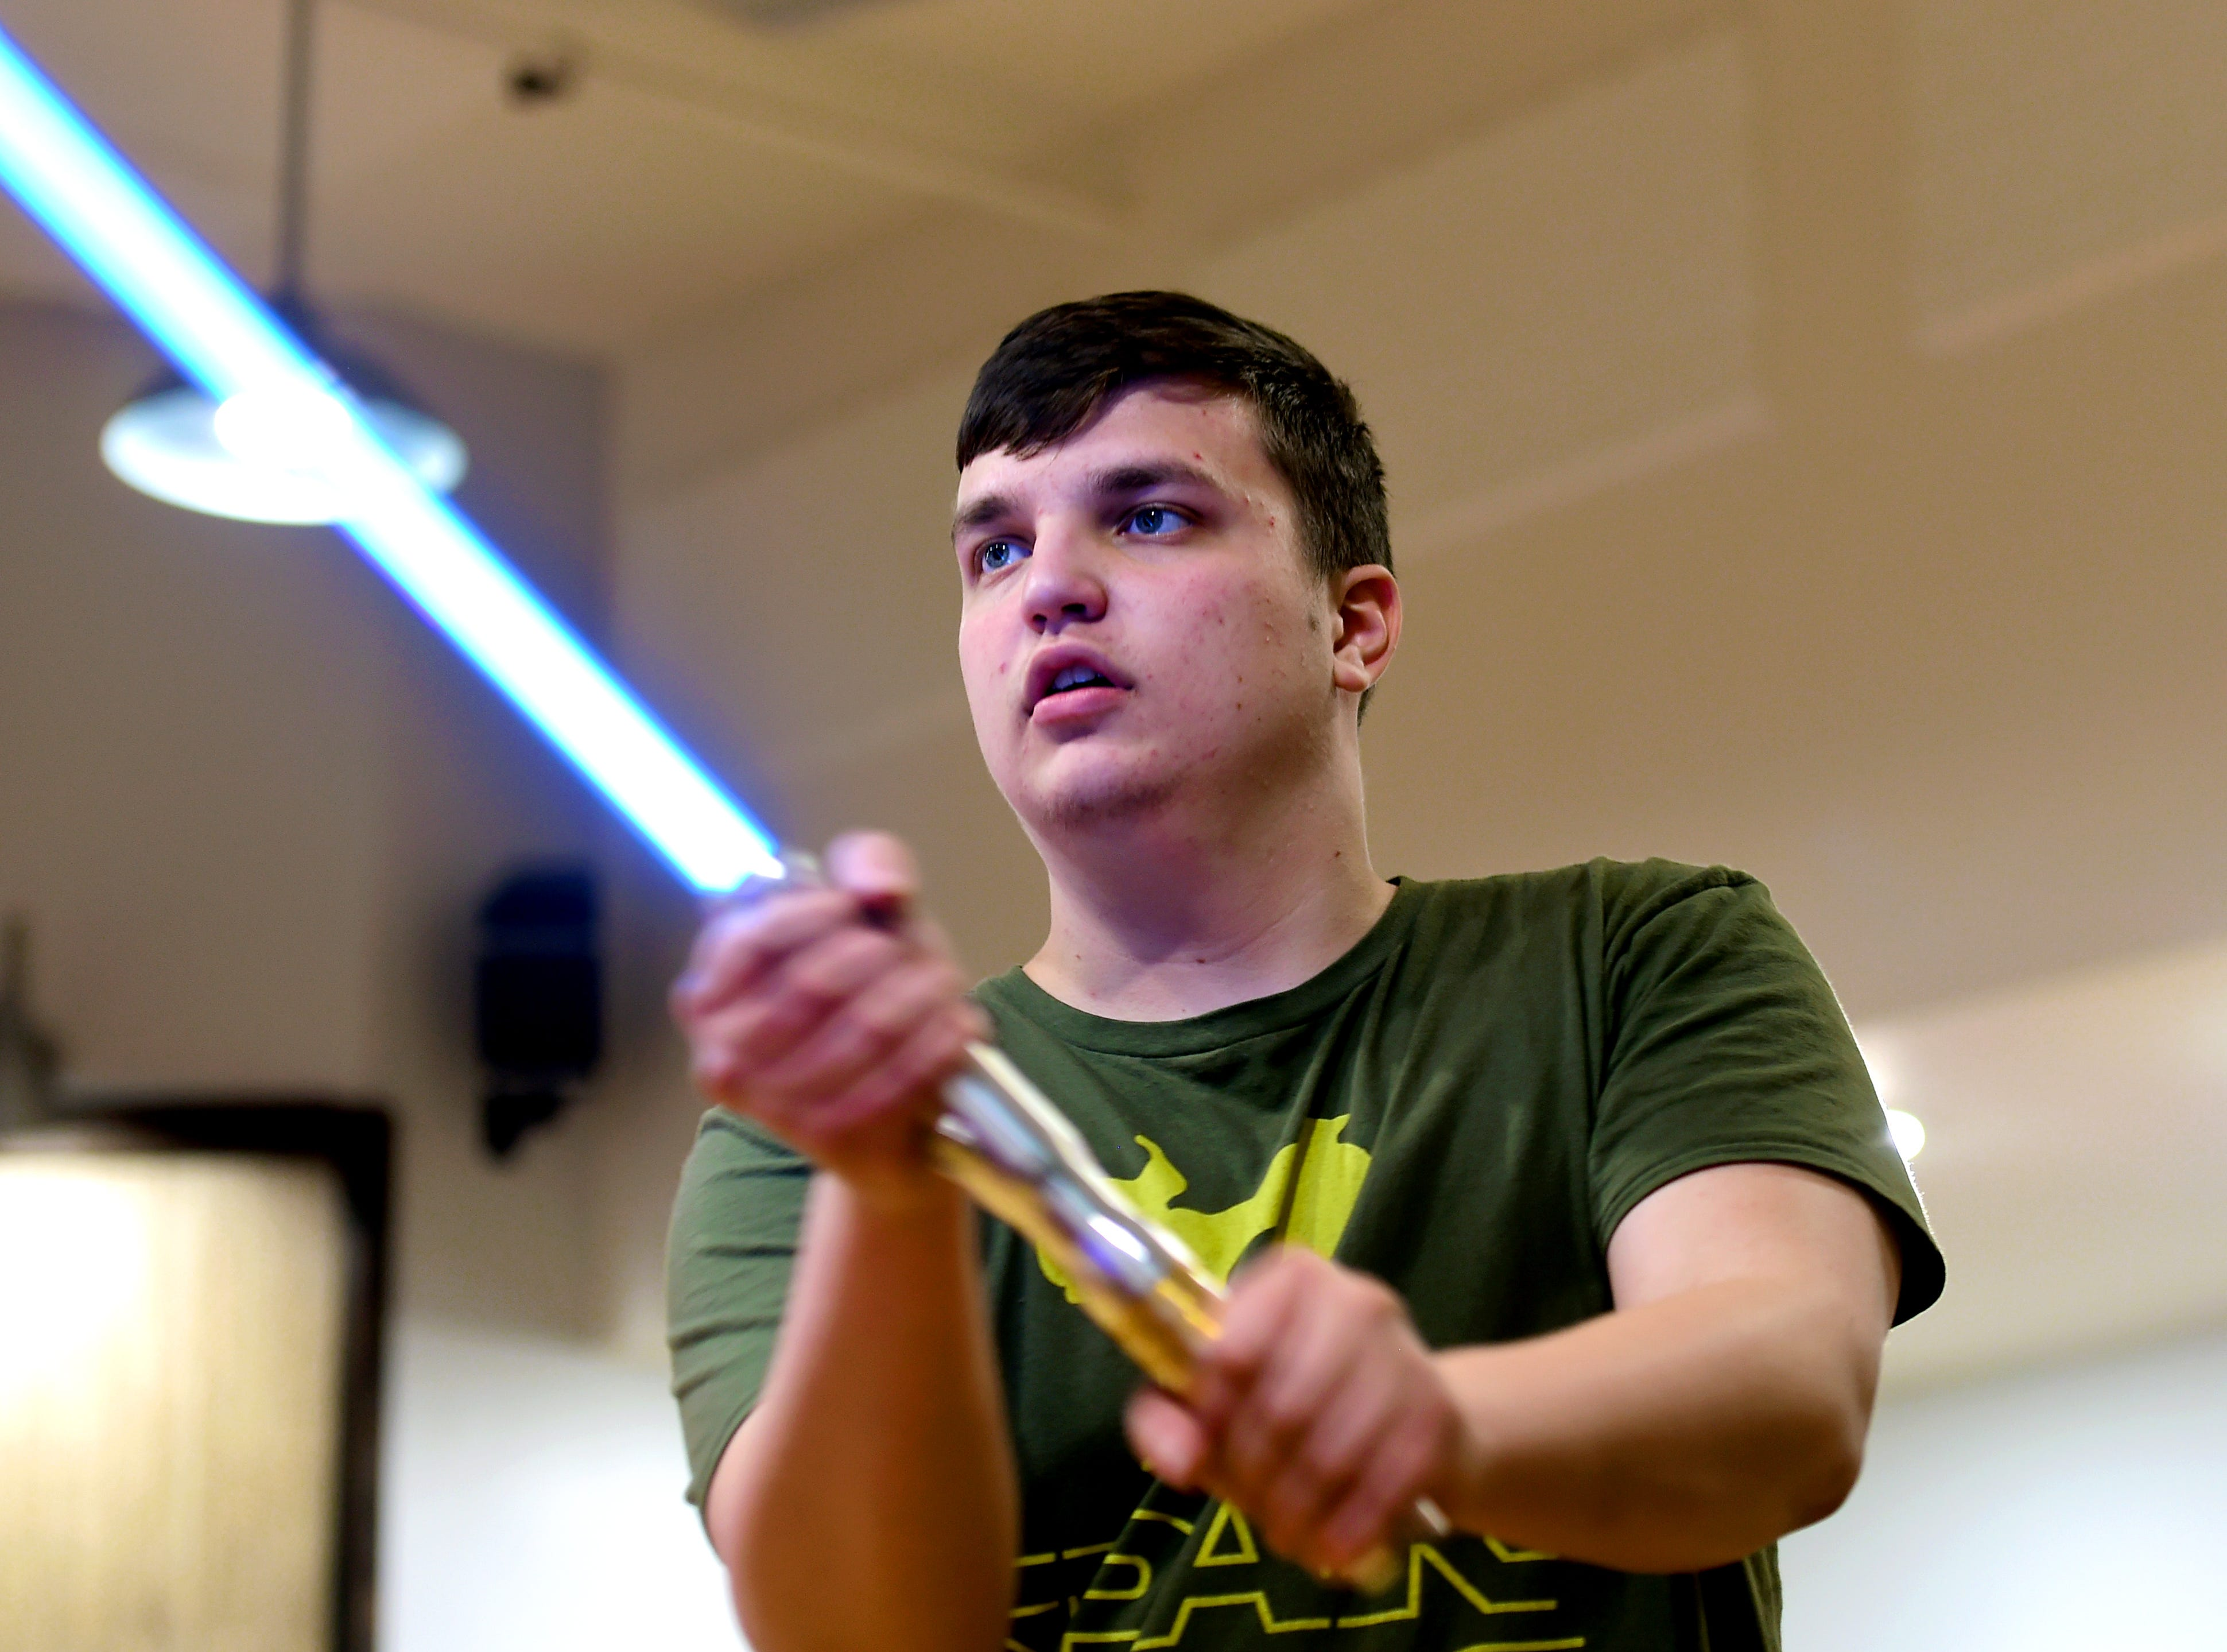 Jacob Cornwell of Van Etten, 12, practices his lightsaber skills at the weekly meeting of the Ithaca Sabers at Centerline Fitness & Martial Arts in Ithaca.  February 4, 2019.